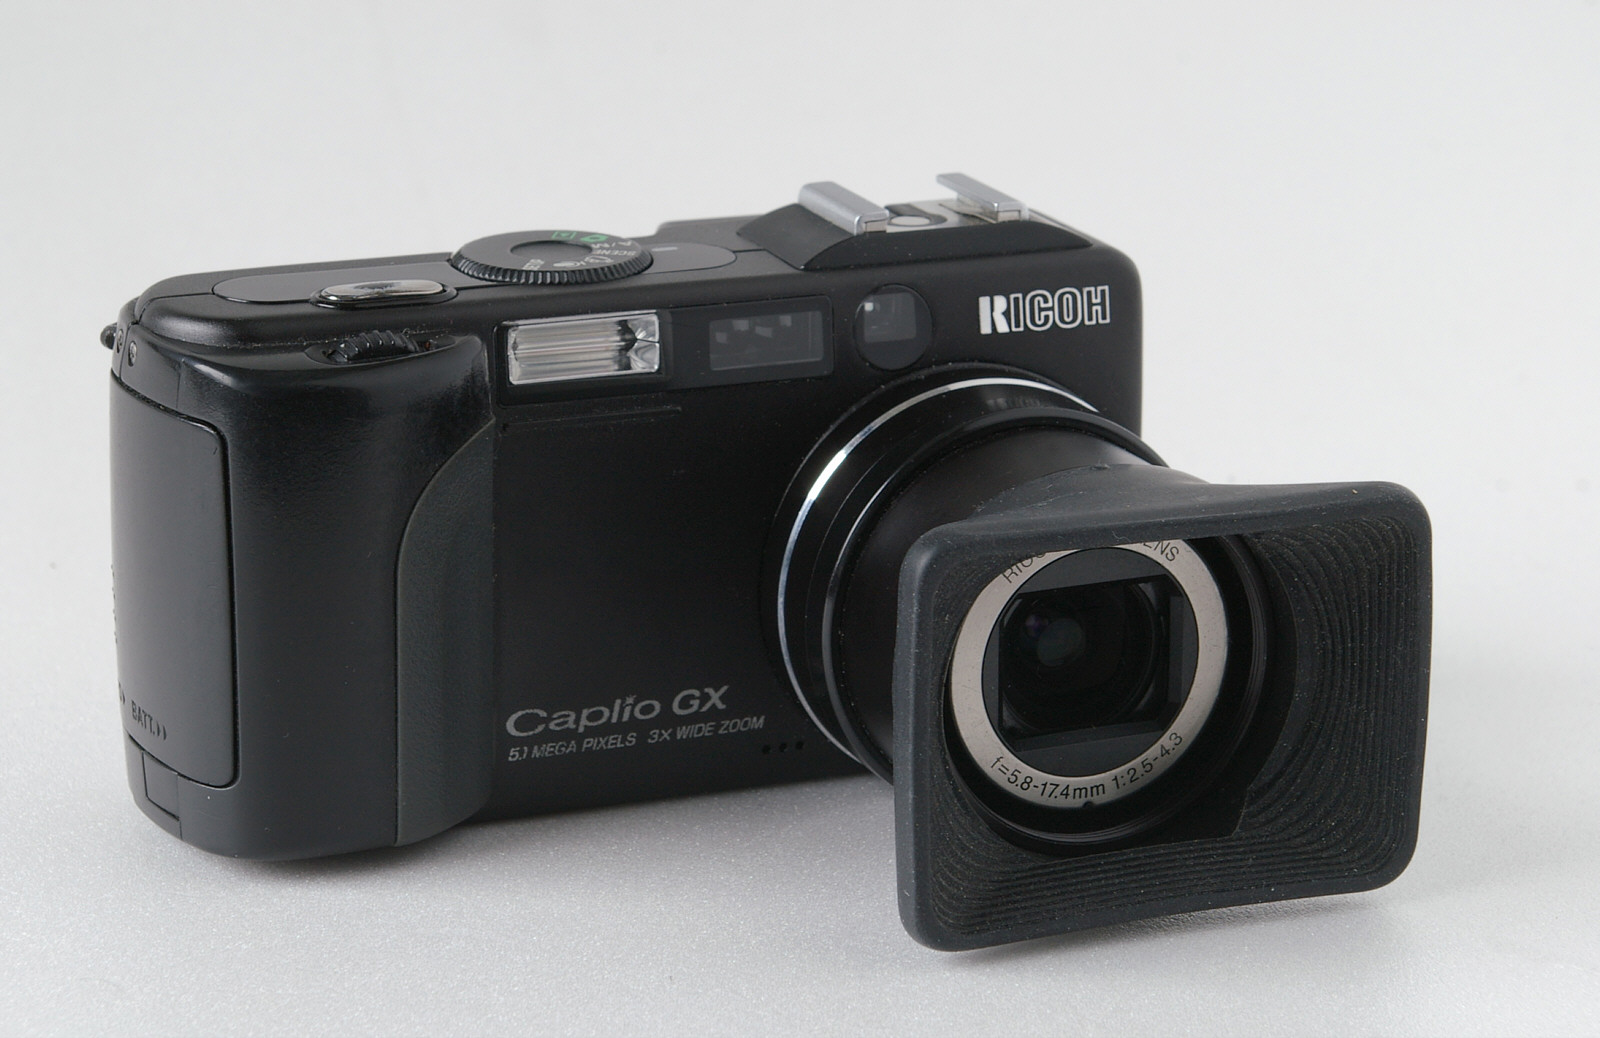 RICOH Caplio GX Camera Driver Windows XP